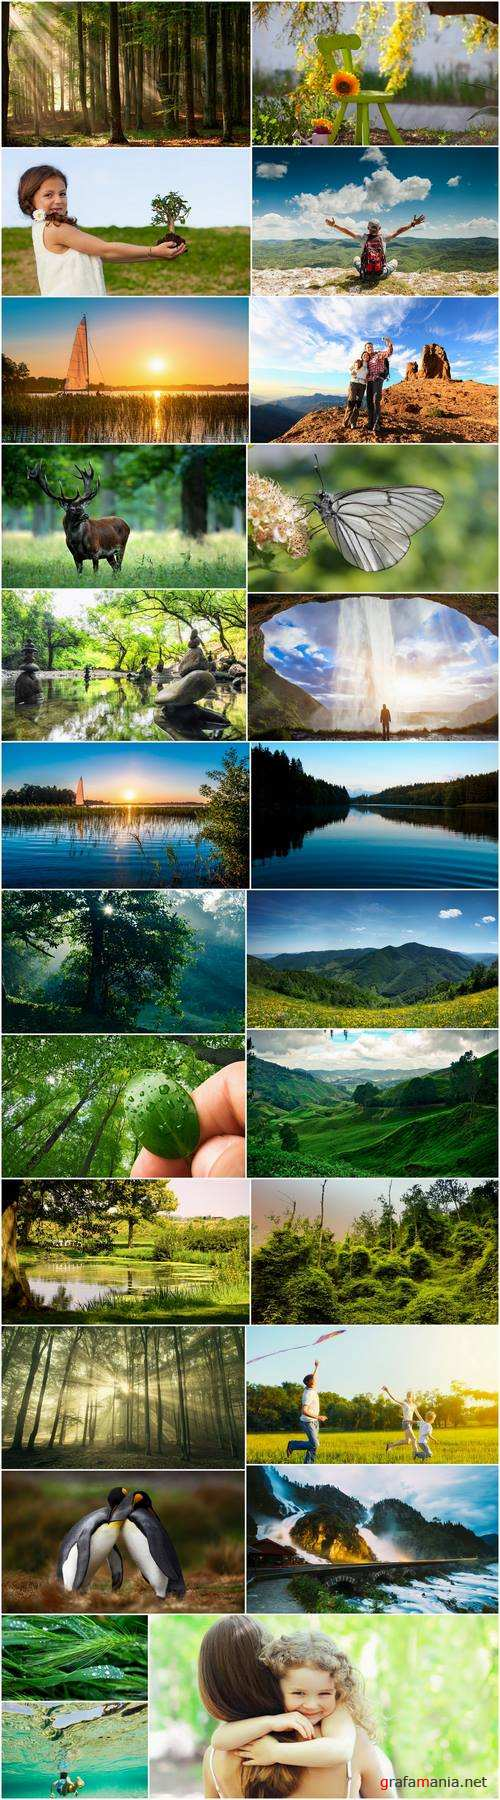 Nature landscape lake river animal 25 HQ Jpeg